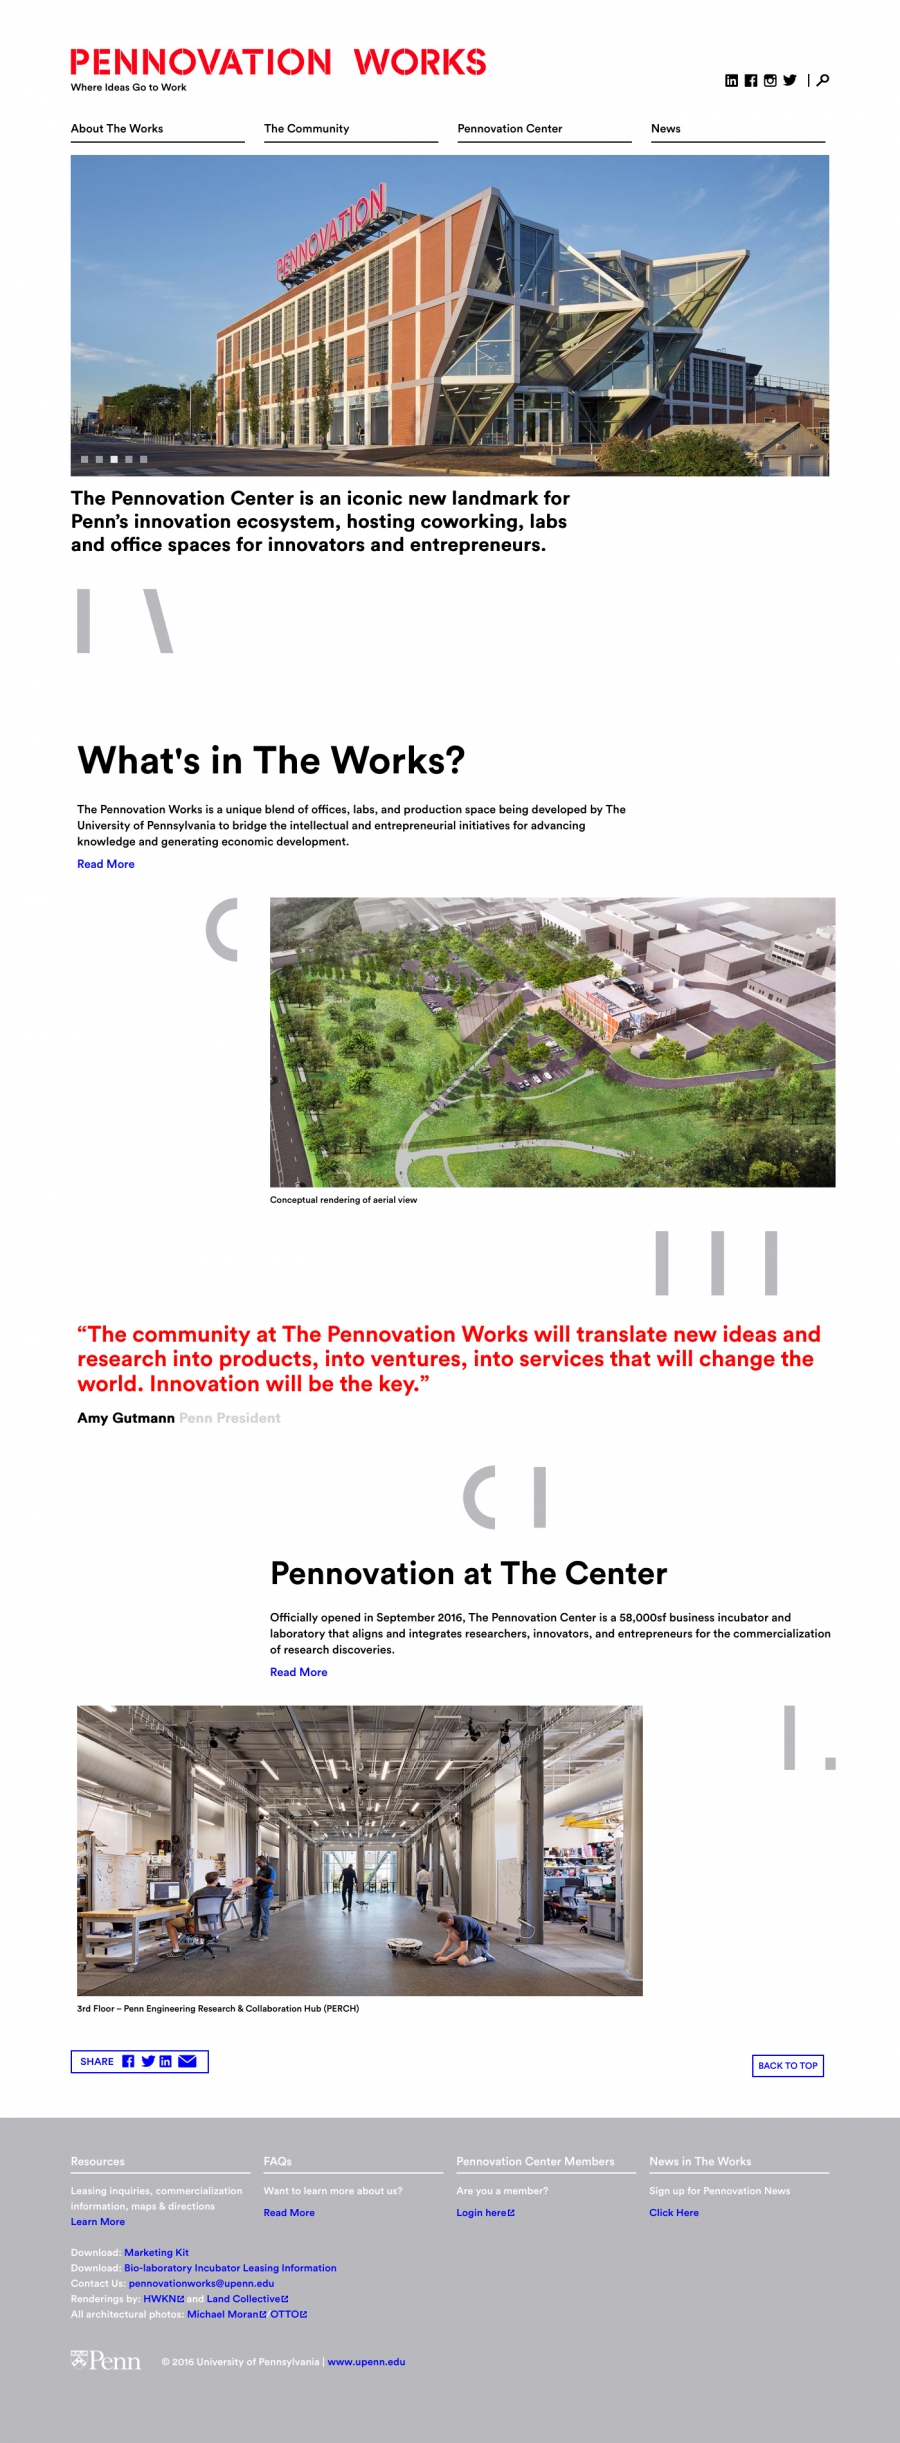 Pennovation Works homepage